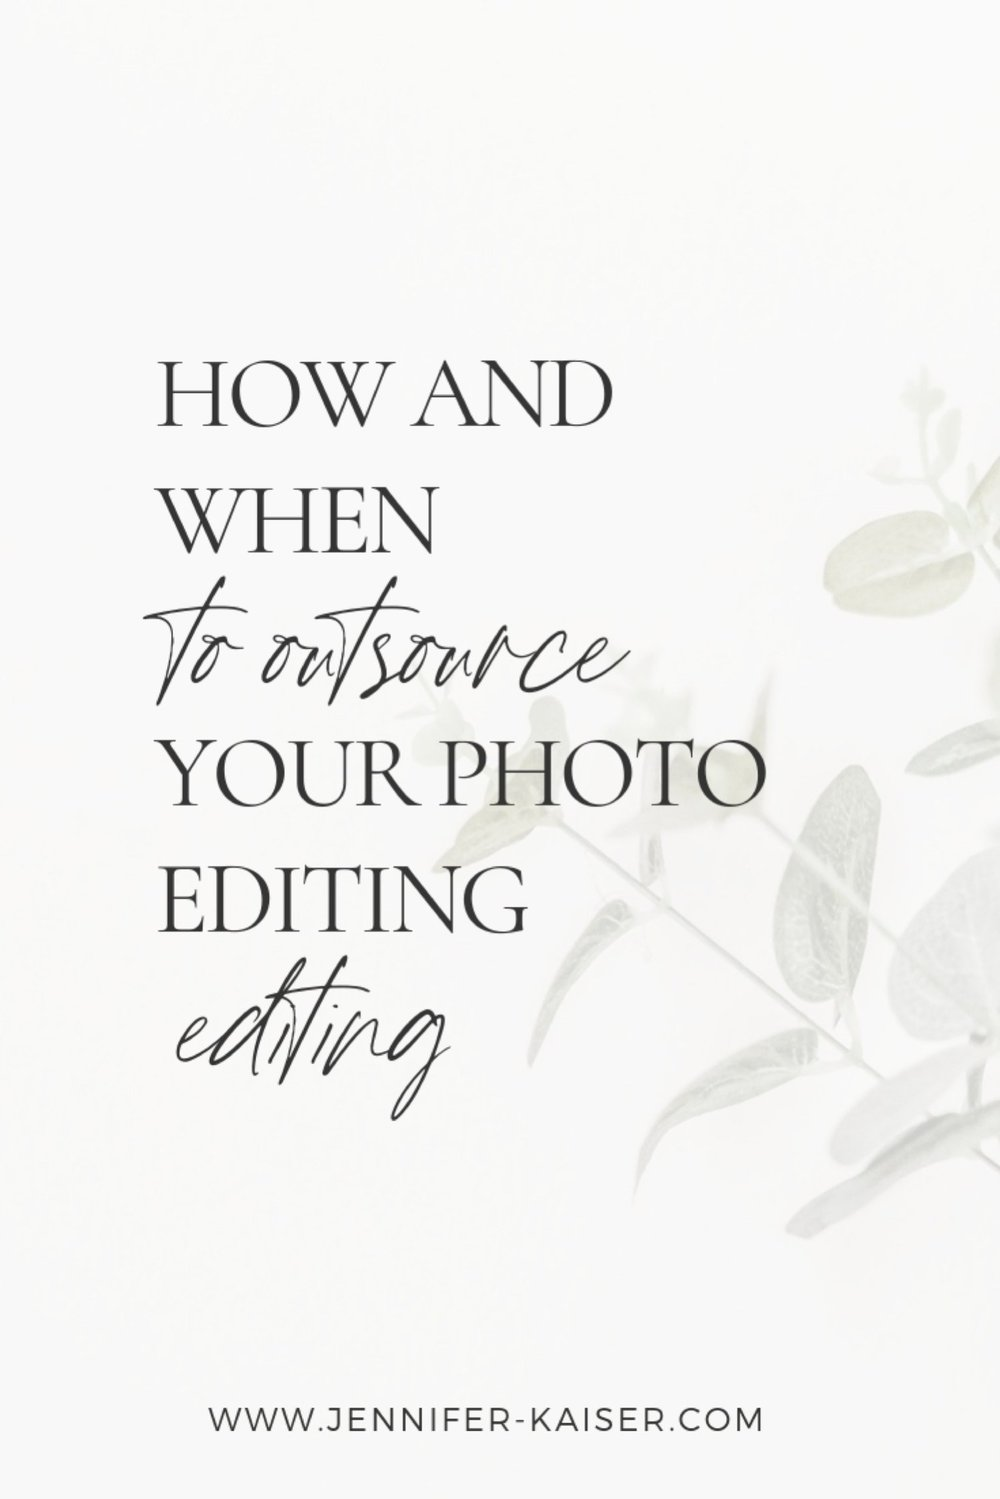 private photo editing, when to outsource your photo editing